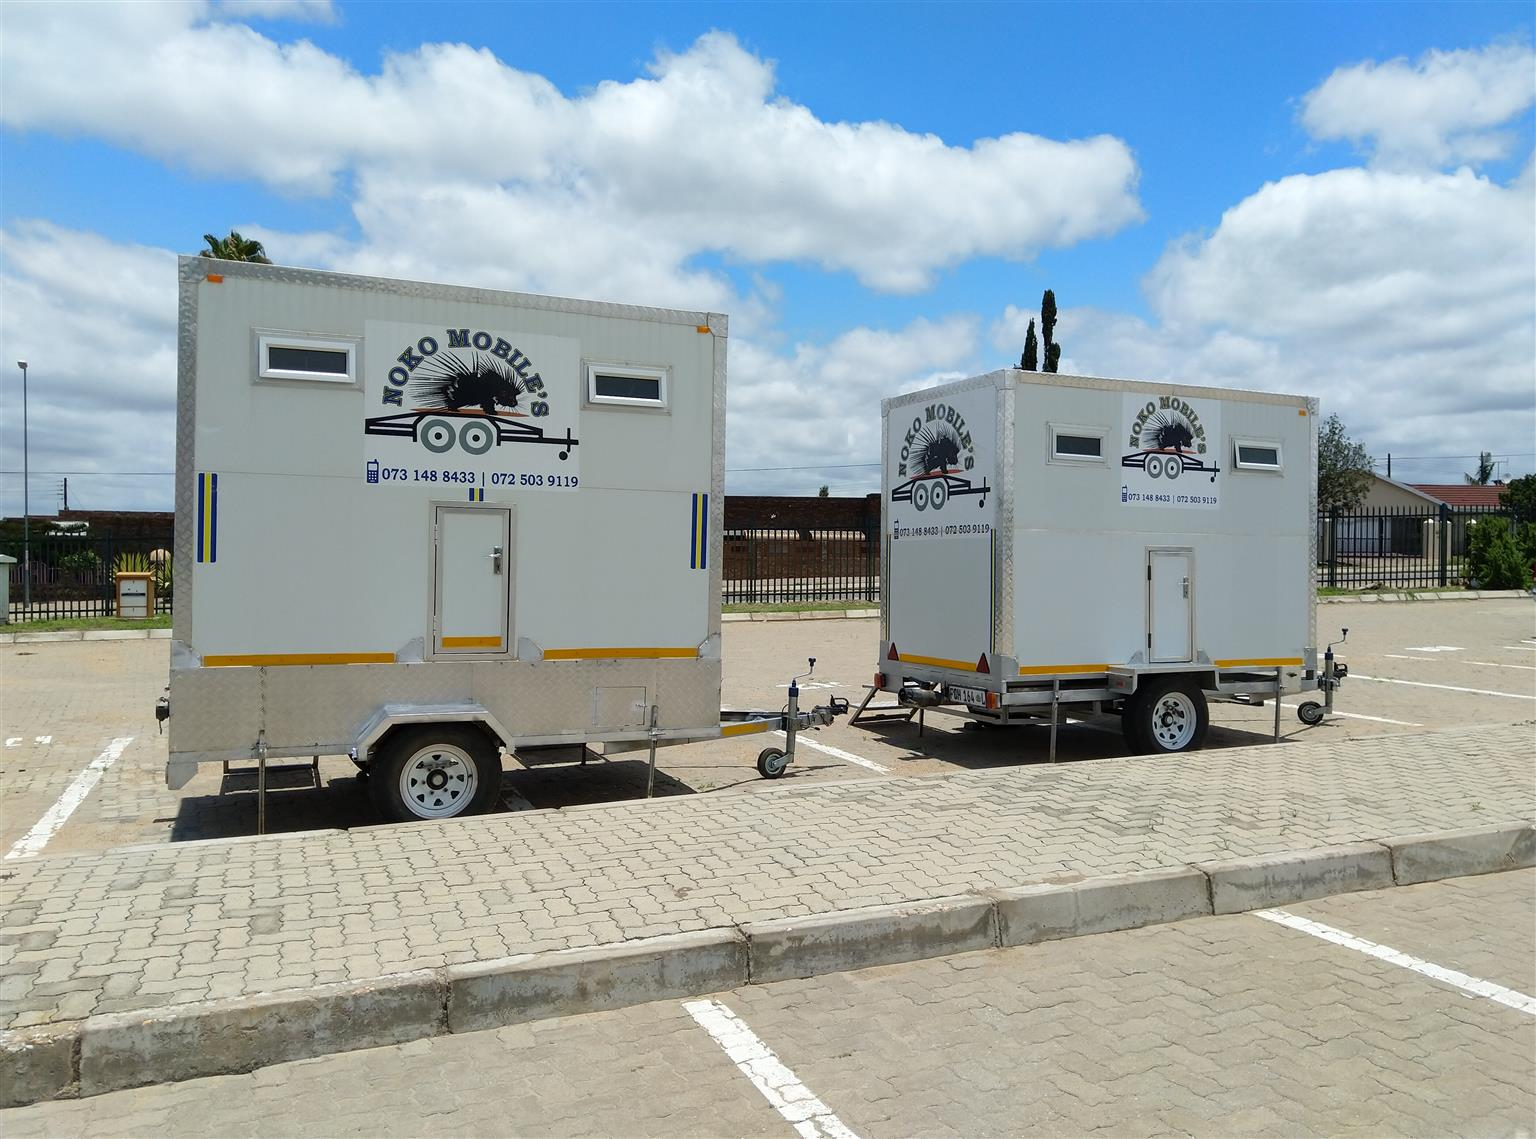 Mobile VIP toilets and freezers 4 hire polokwane and surroundings